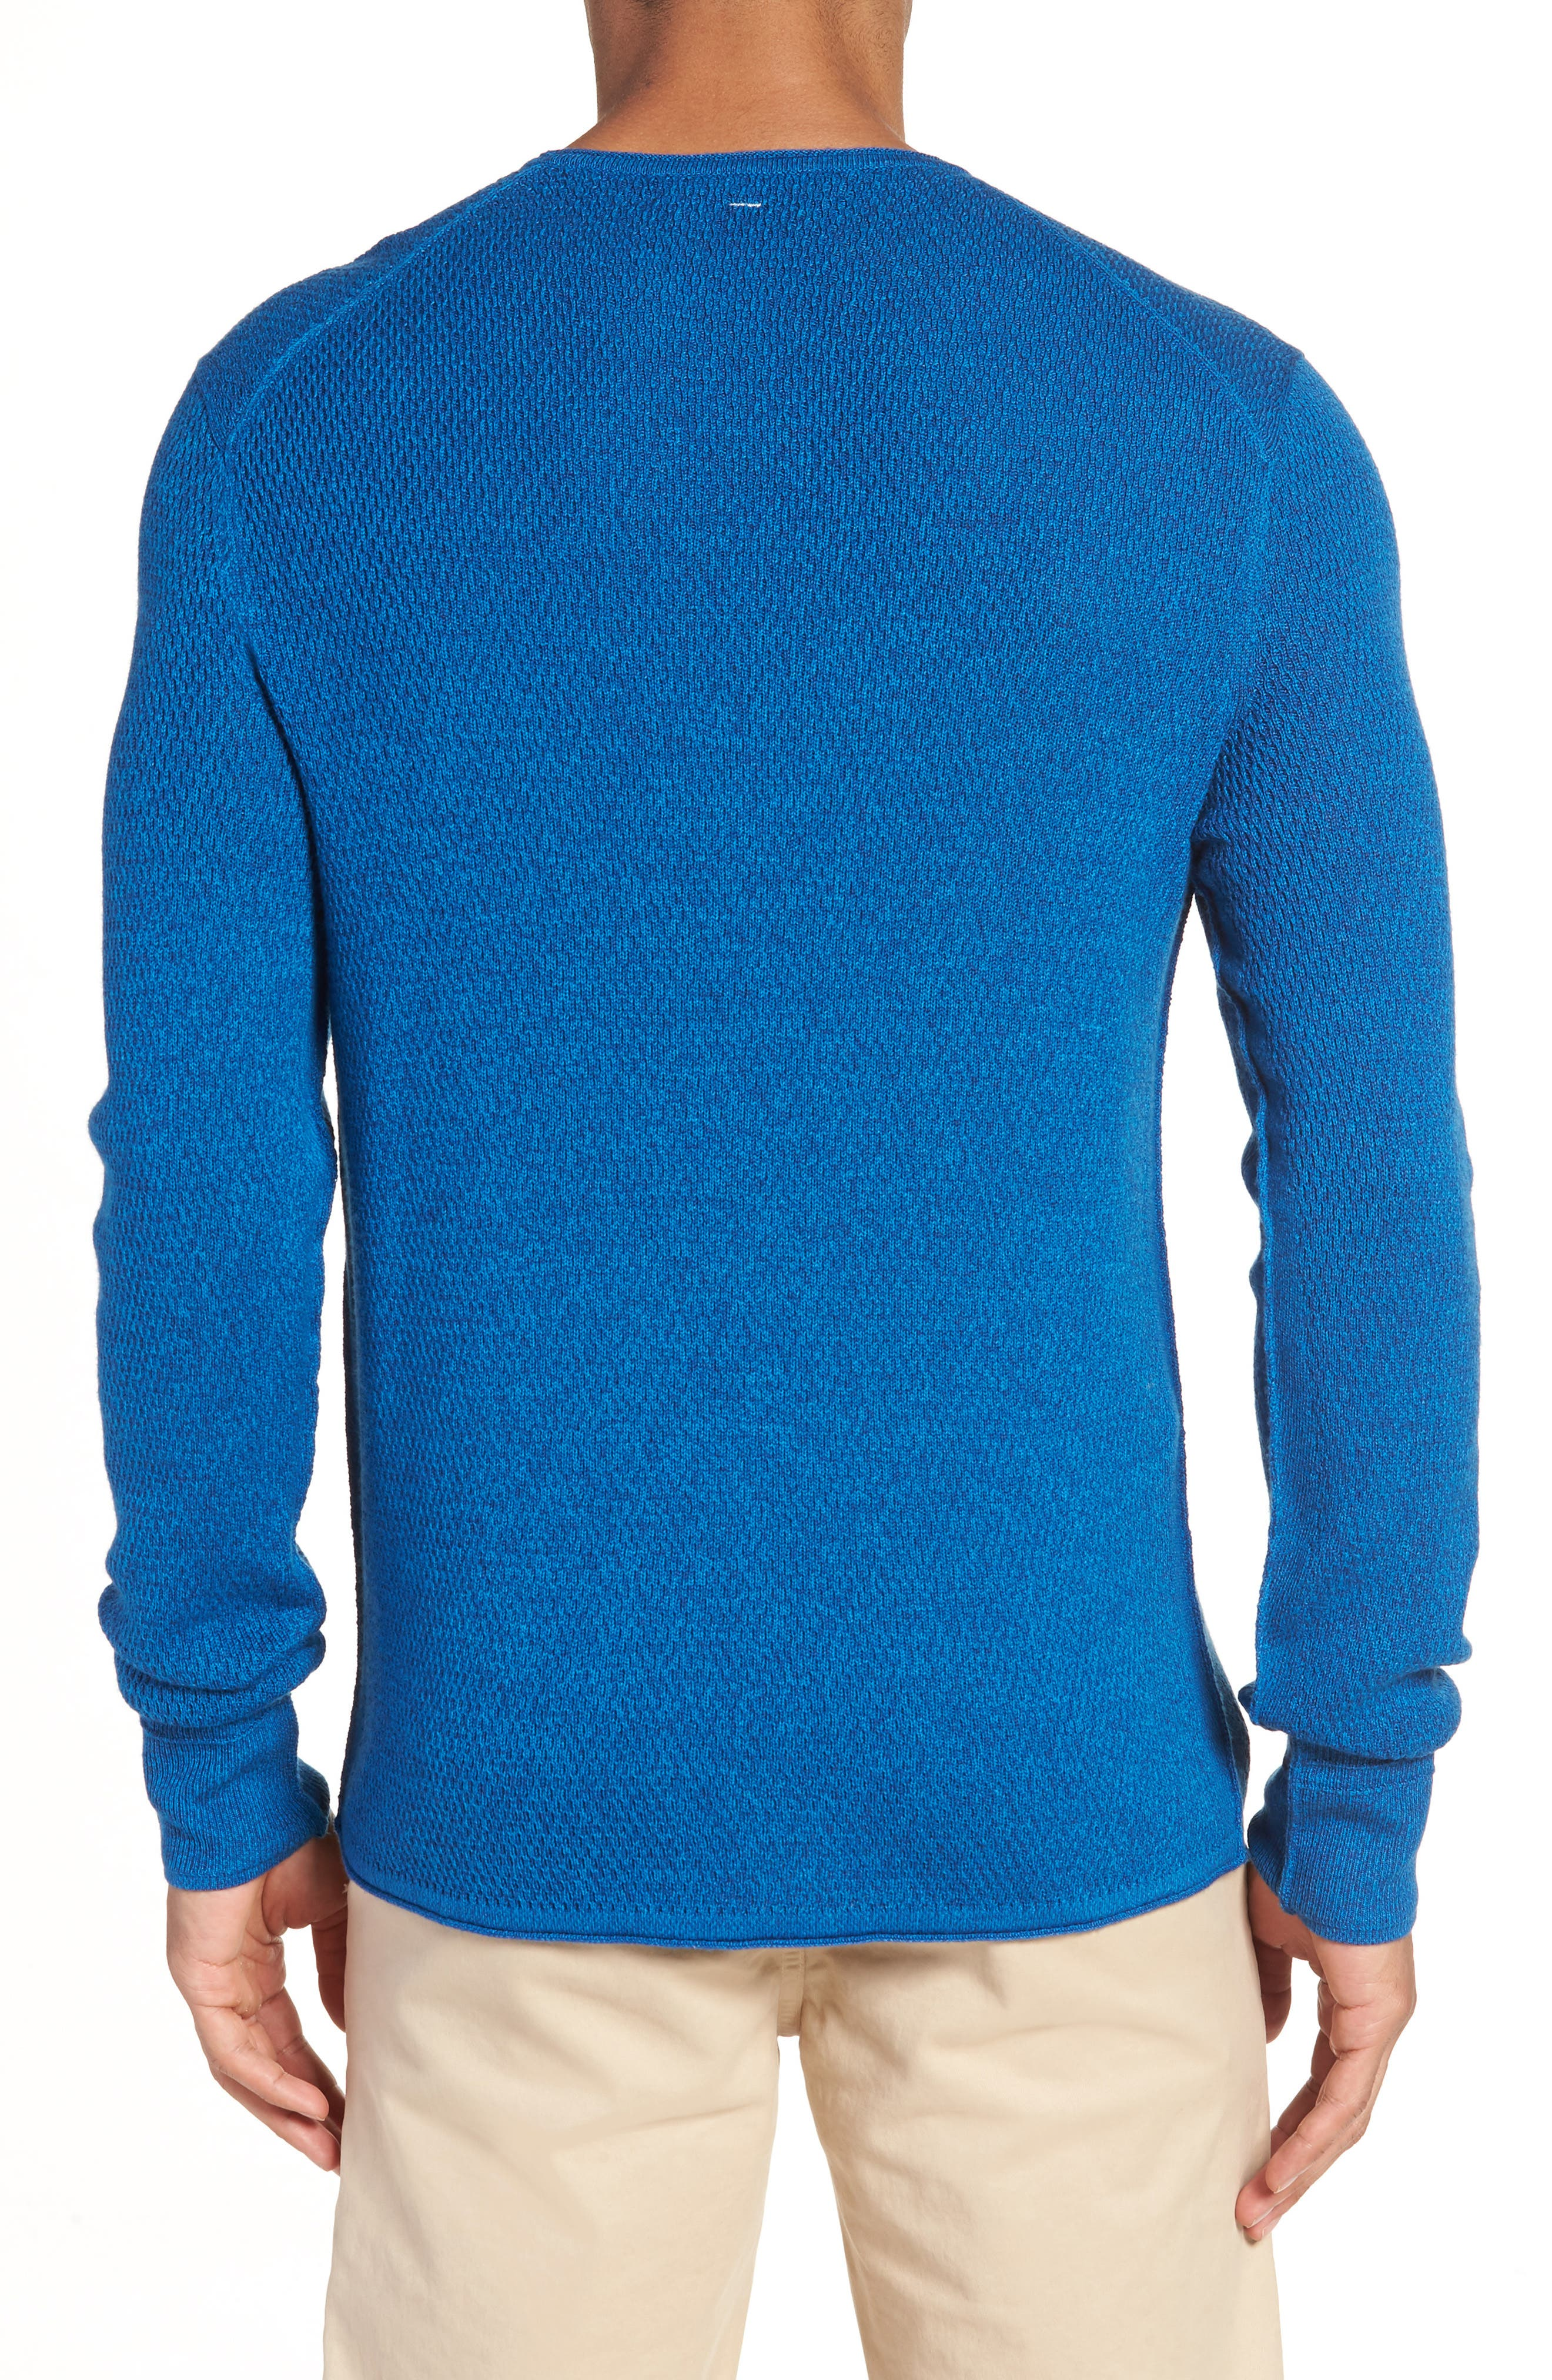 Gregory Wool Blend Crewneck Sweater,                             Alternate thumbnail 2, color,                             Bright Blue